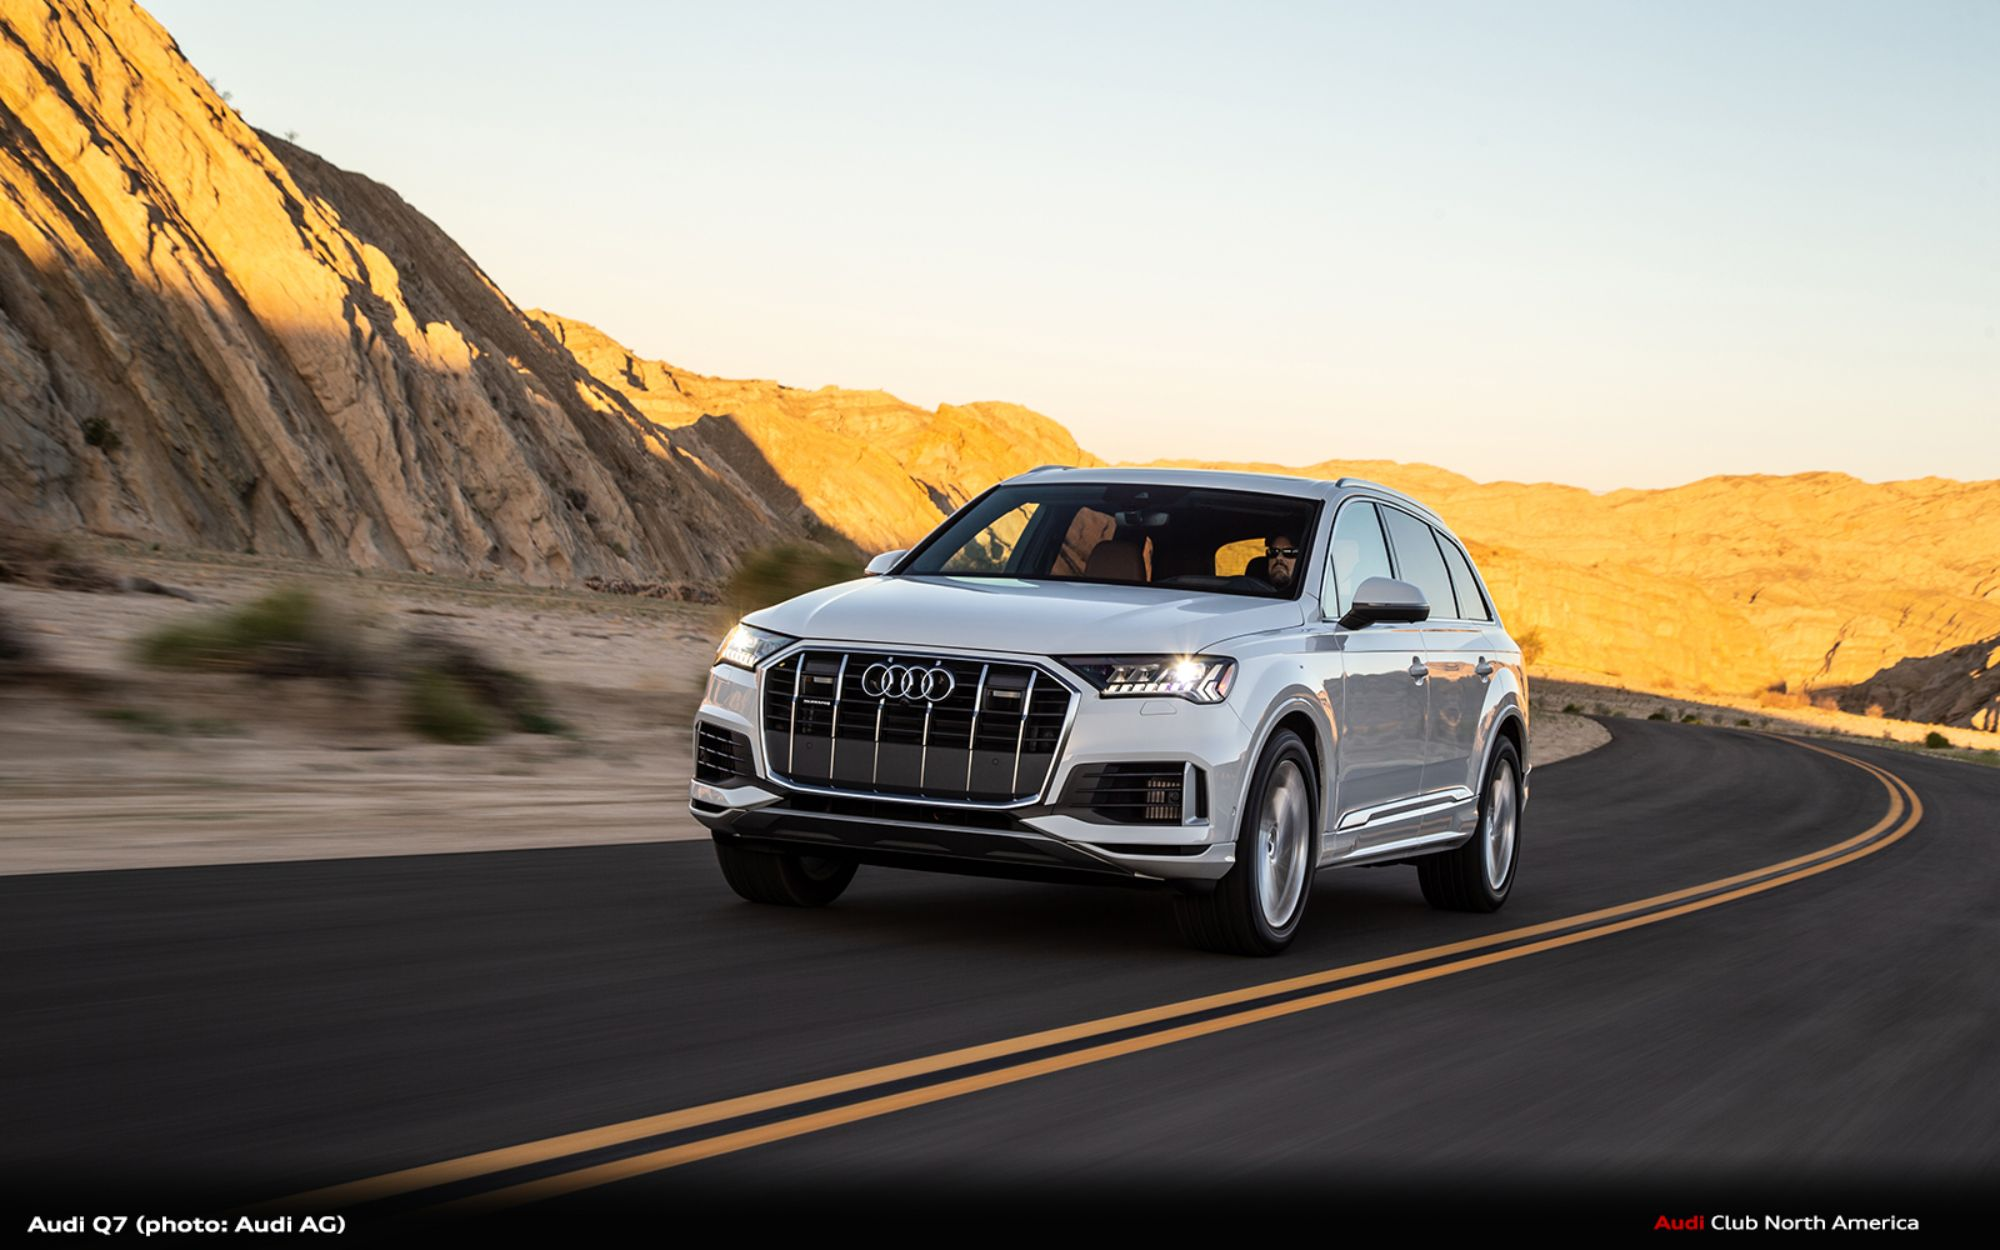 Audi Announces Model Year 2022 Updates With Increased Standard Equipment, Driver Assistance and Personalization Options